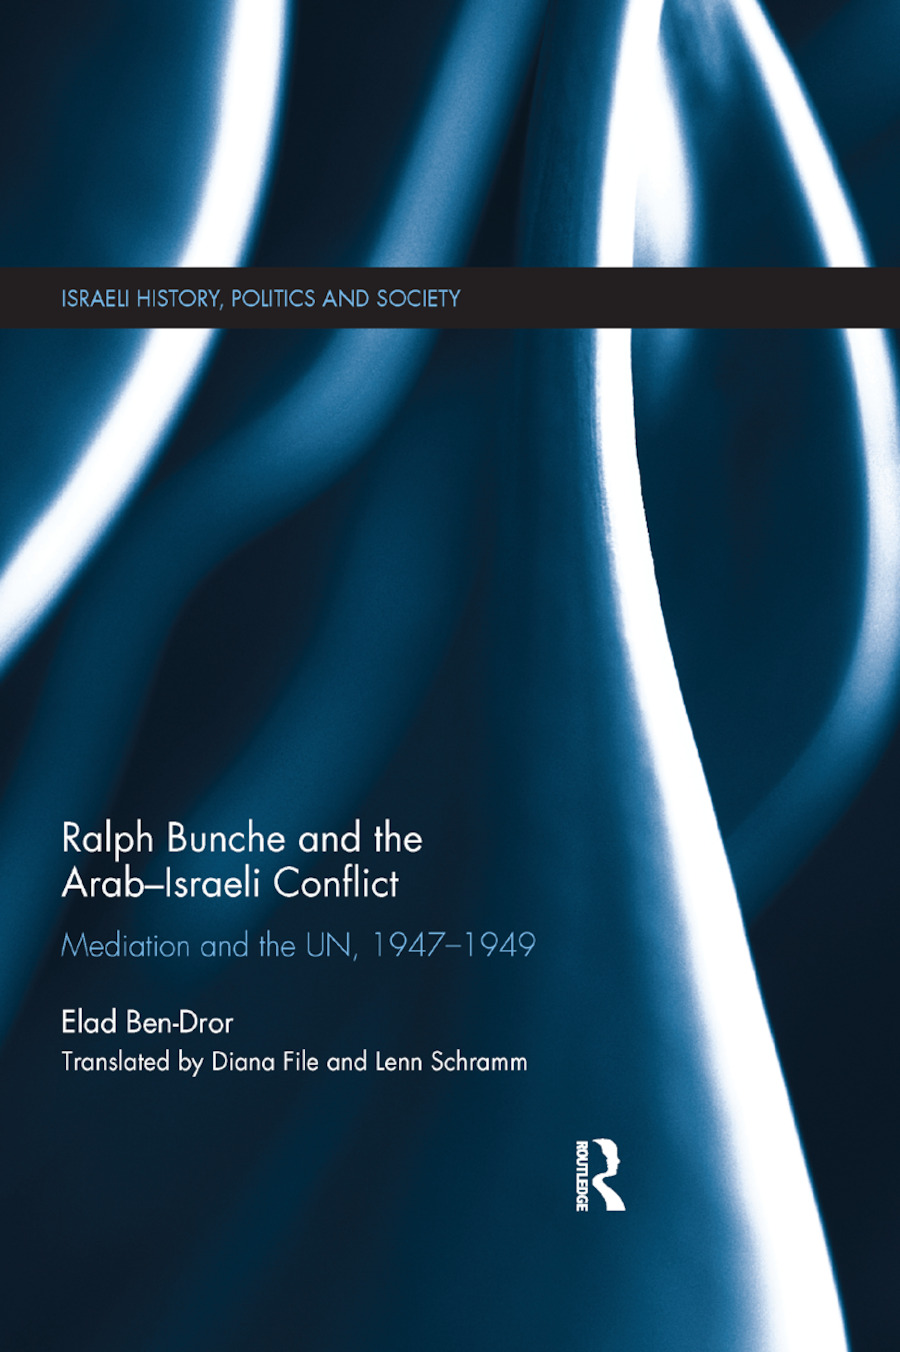 Ralph Bunche and the Arab-Israeli Conflict: Mediation and the UN, 1947-1949 book cover